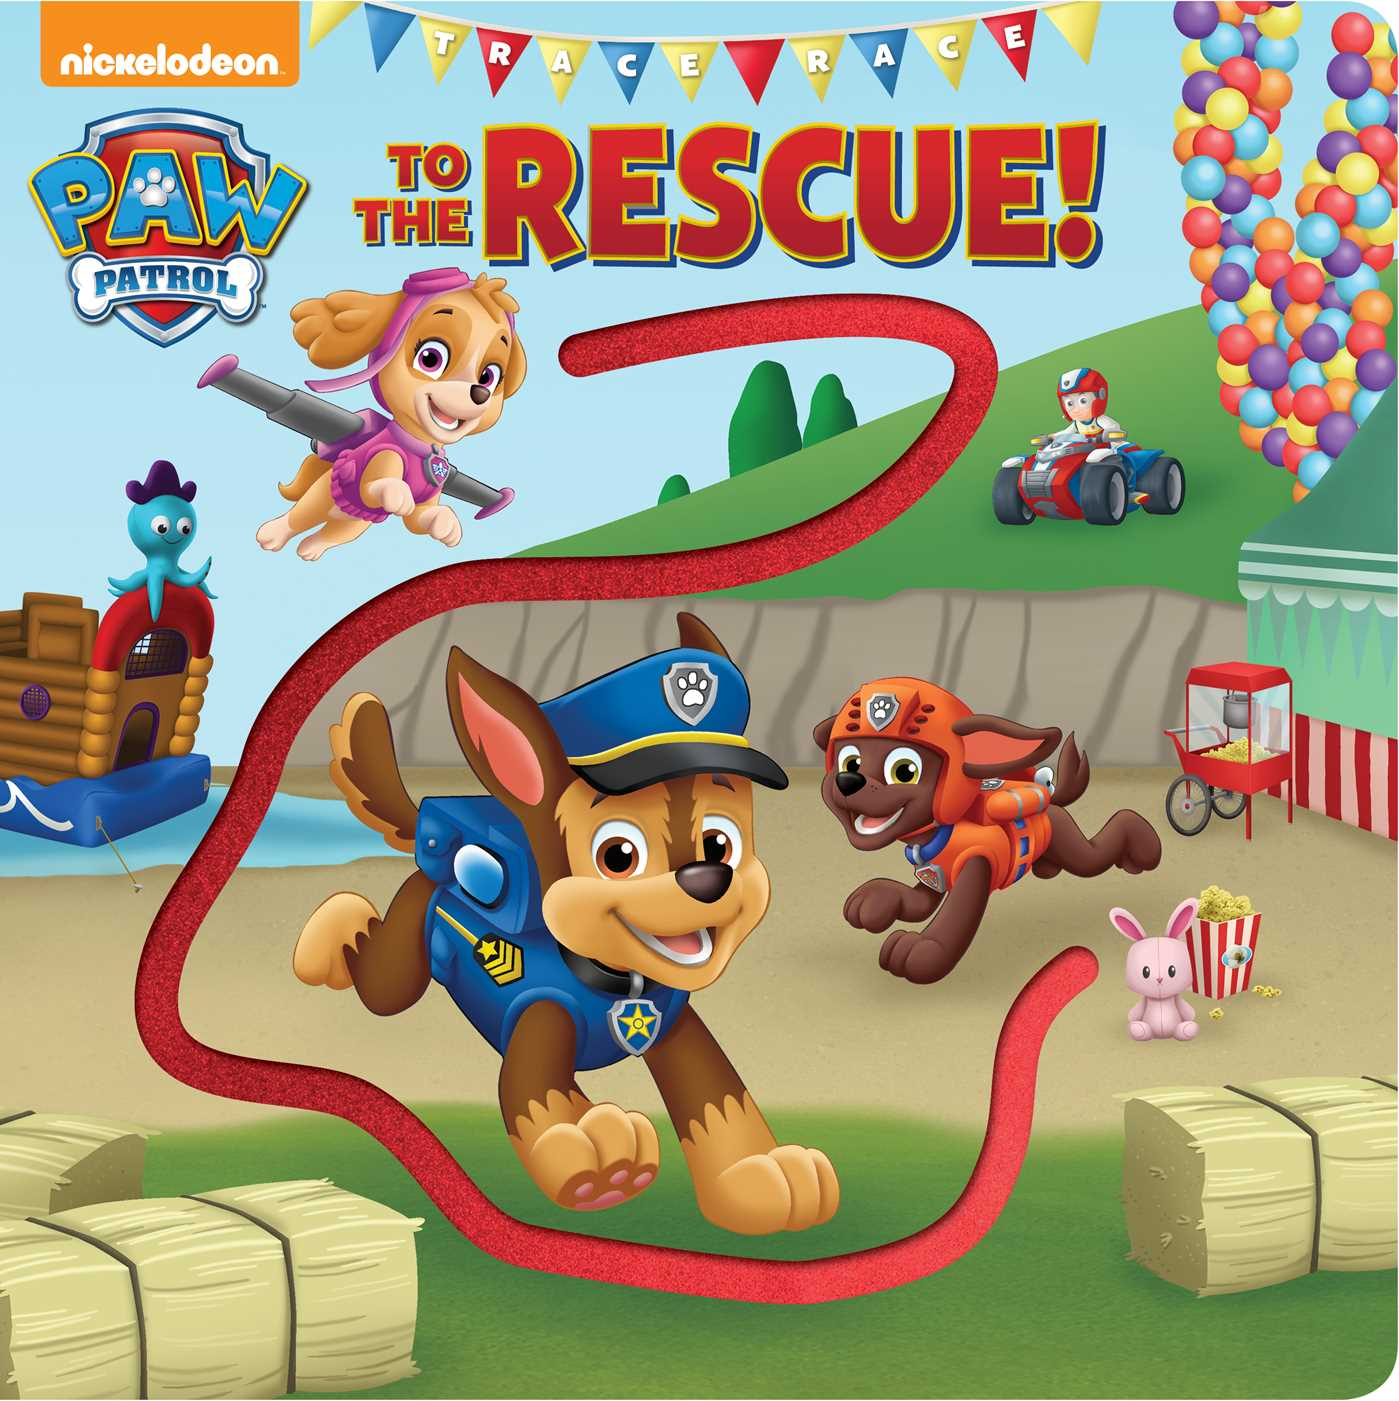 Paw patrol trace race to the rescue 9780794441708 hr